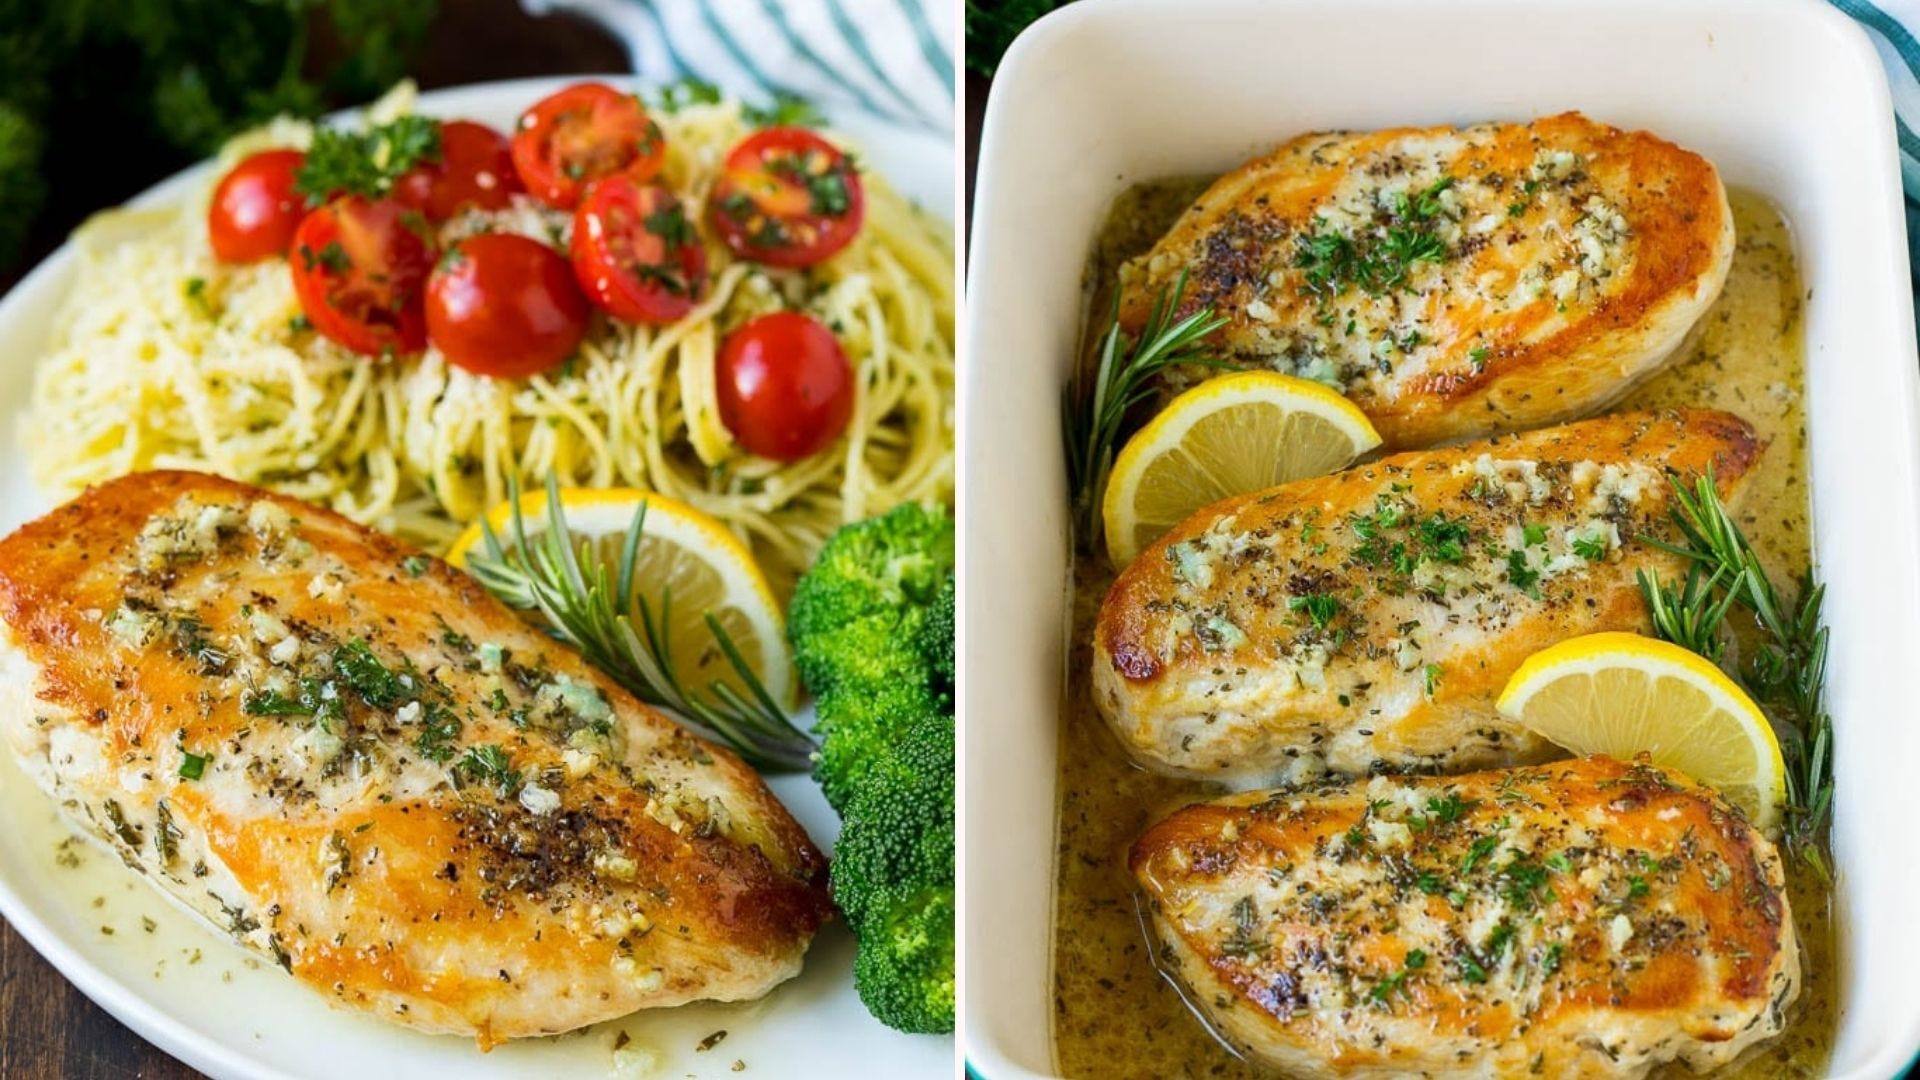 Two image: The left is of rosemary lemon chicken plated with angled hair pasta and broccoli, garnished with a large sprig of rosemary and a lemon wedge and the right image is of three chicken breasts in a casserole dish garnished with lemon and rosemary.